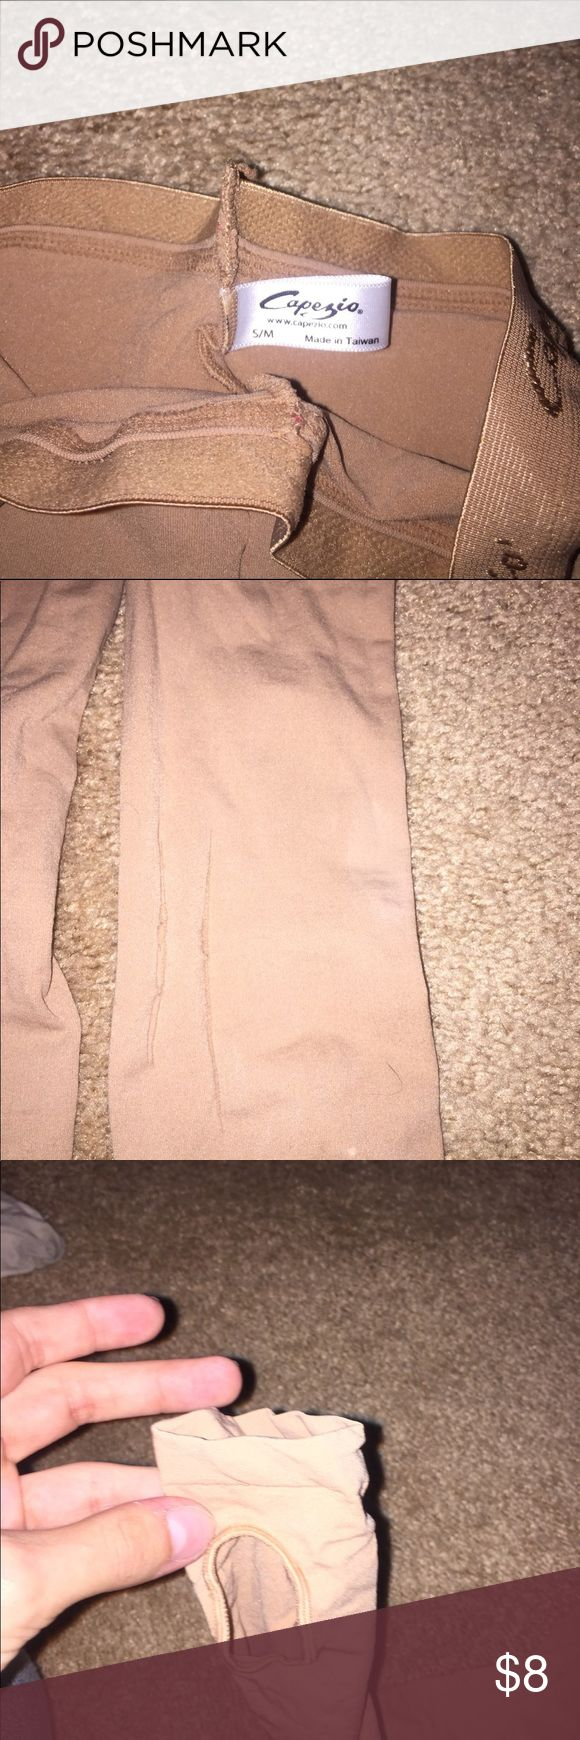 Tan and pink dance tights Capezio pink and tan tights pink are footed and the tan has the open foot tan has slight tearing but will be good for practices Capezio Other